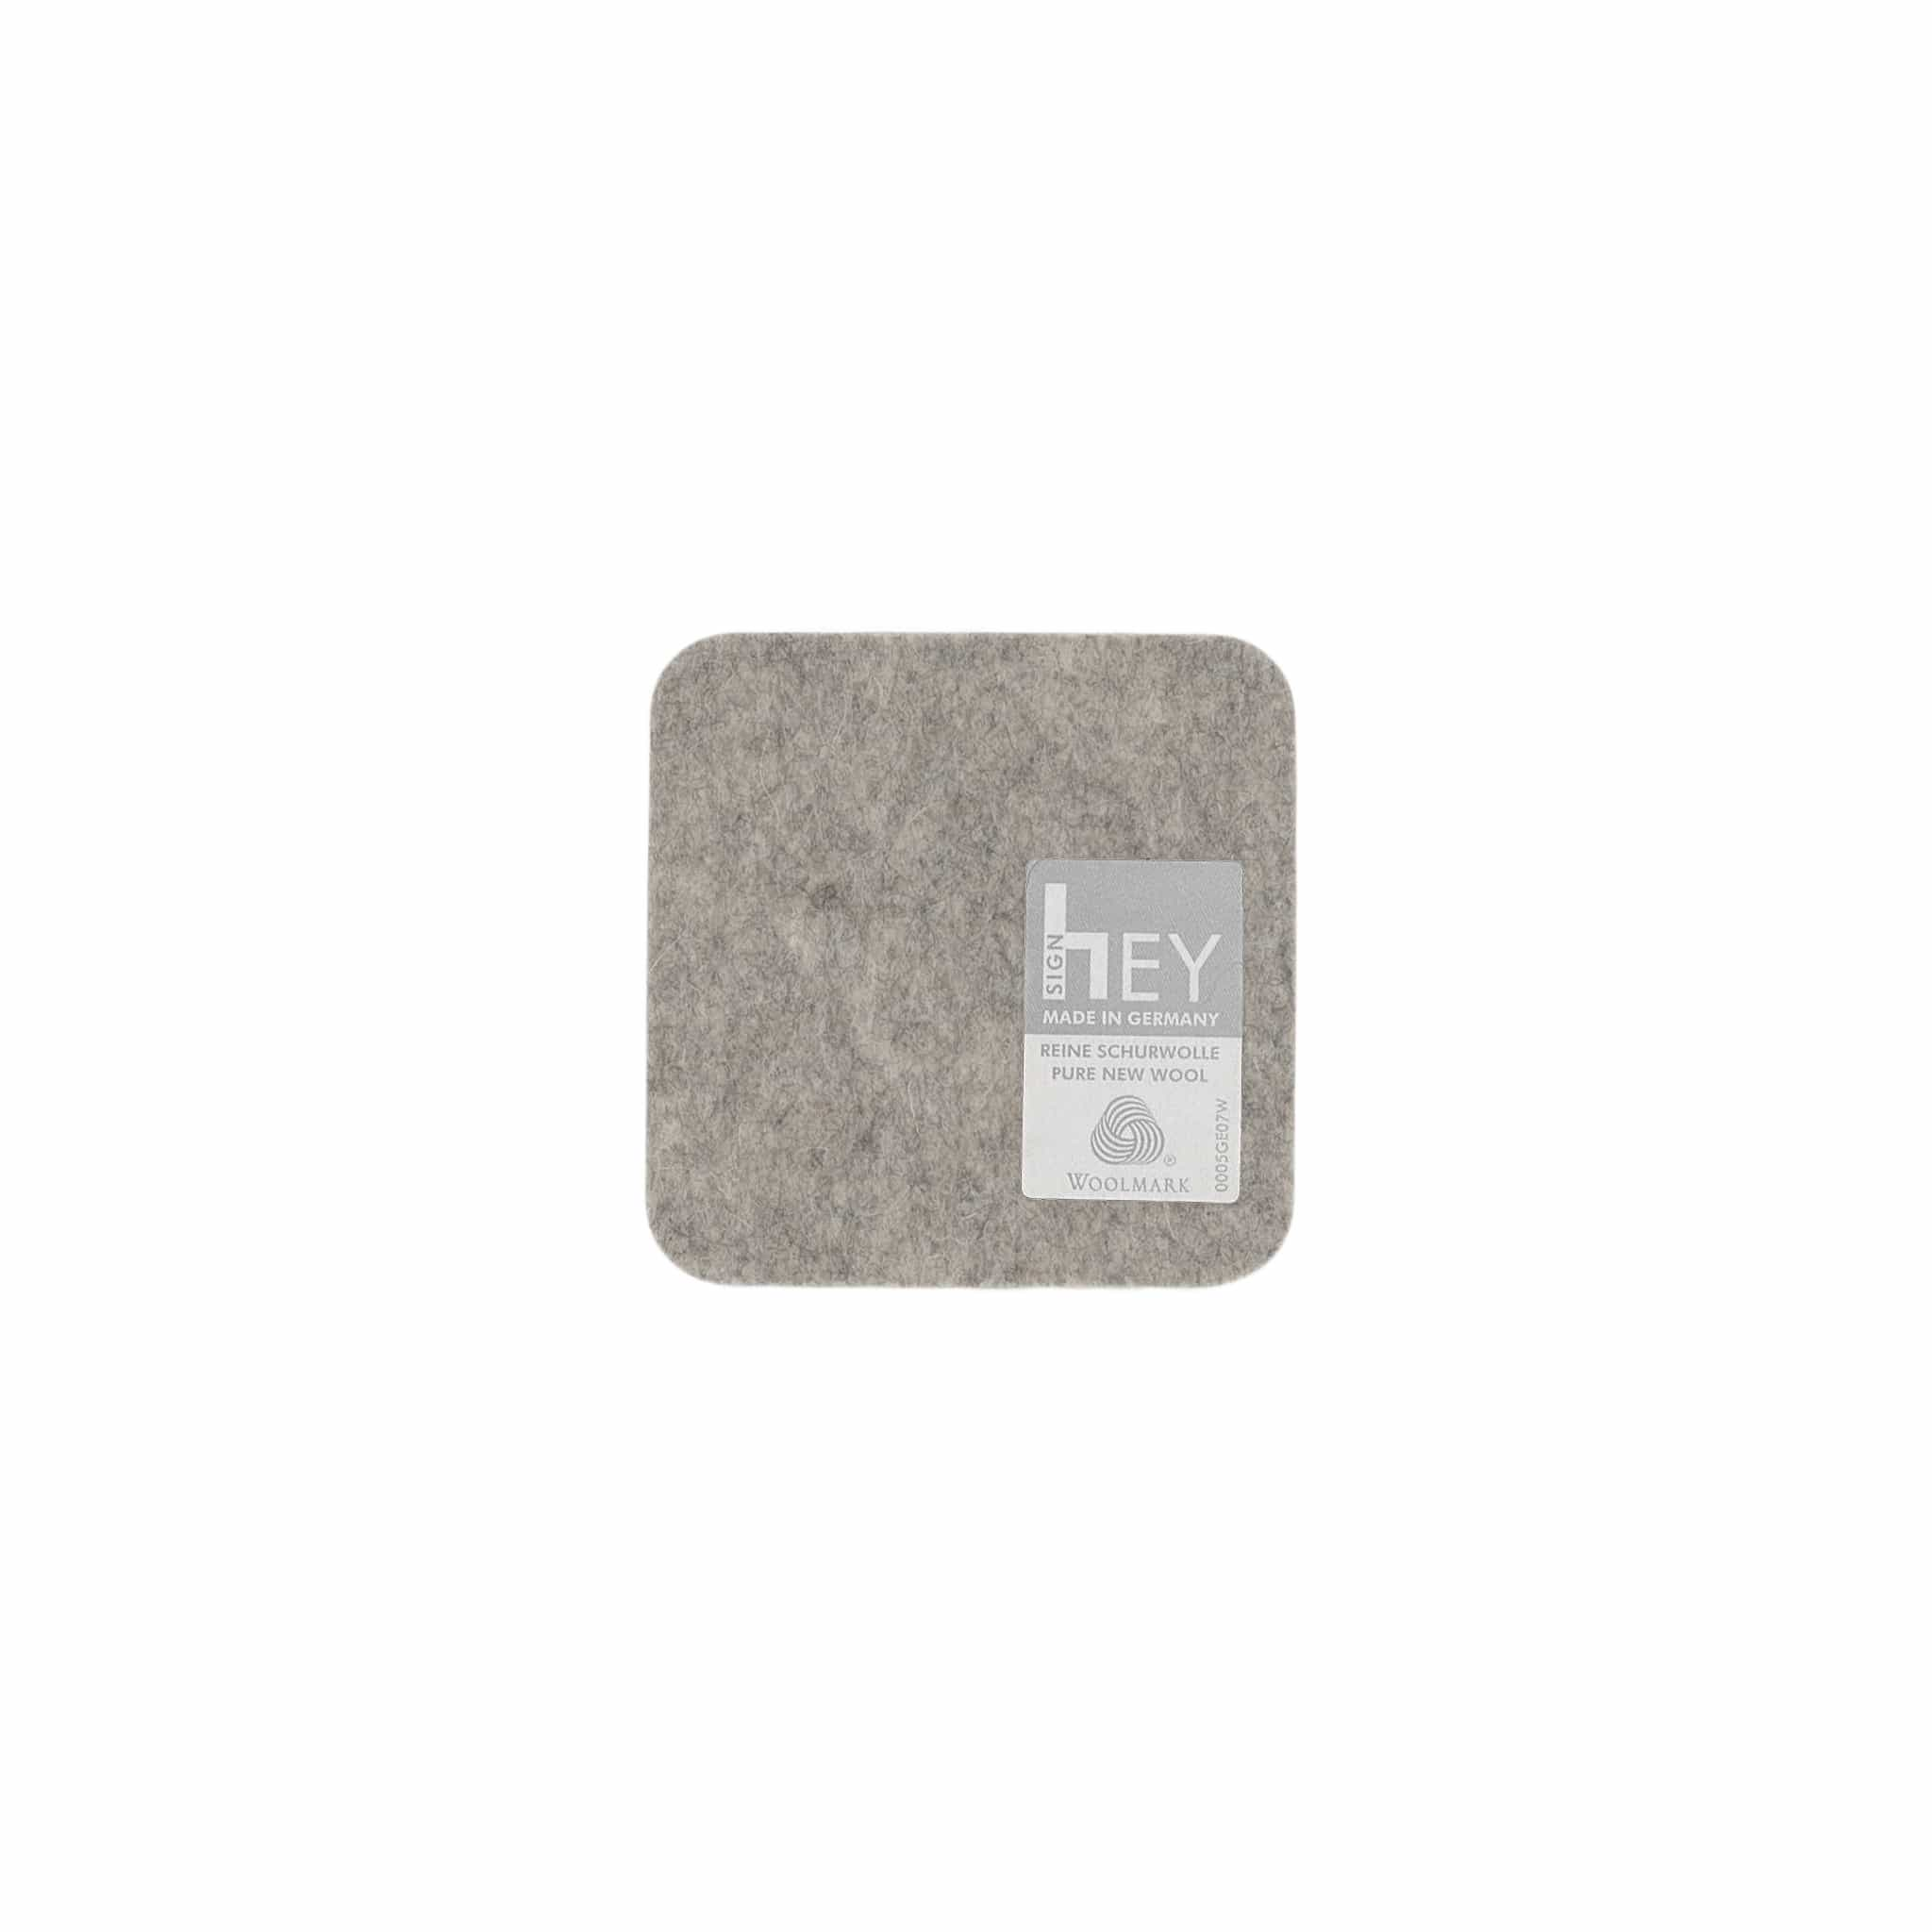 Square Felt Coaster in Light-Grey by Hey-Sign 300160907 looking at Back